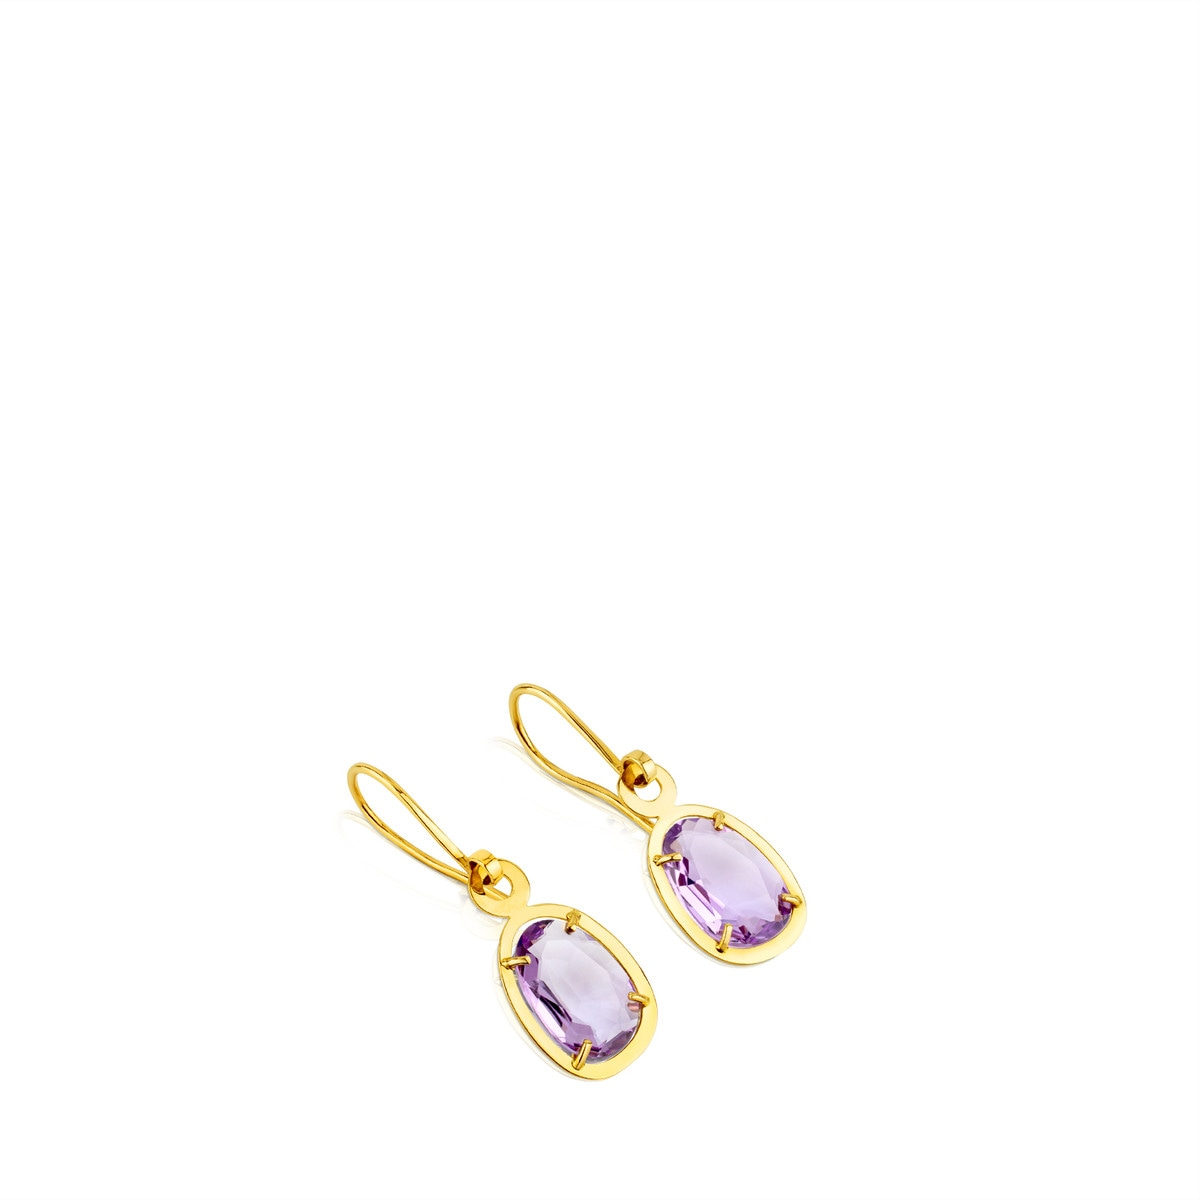 Gold Dinah Earrings with amethyst